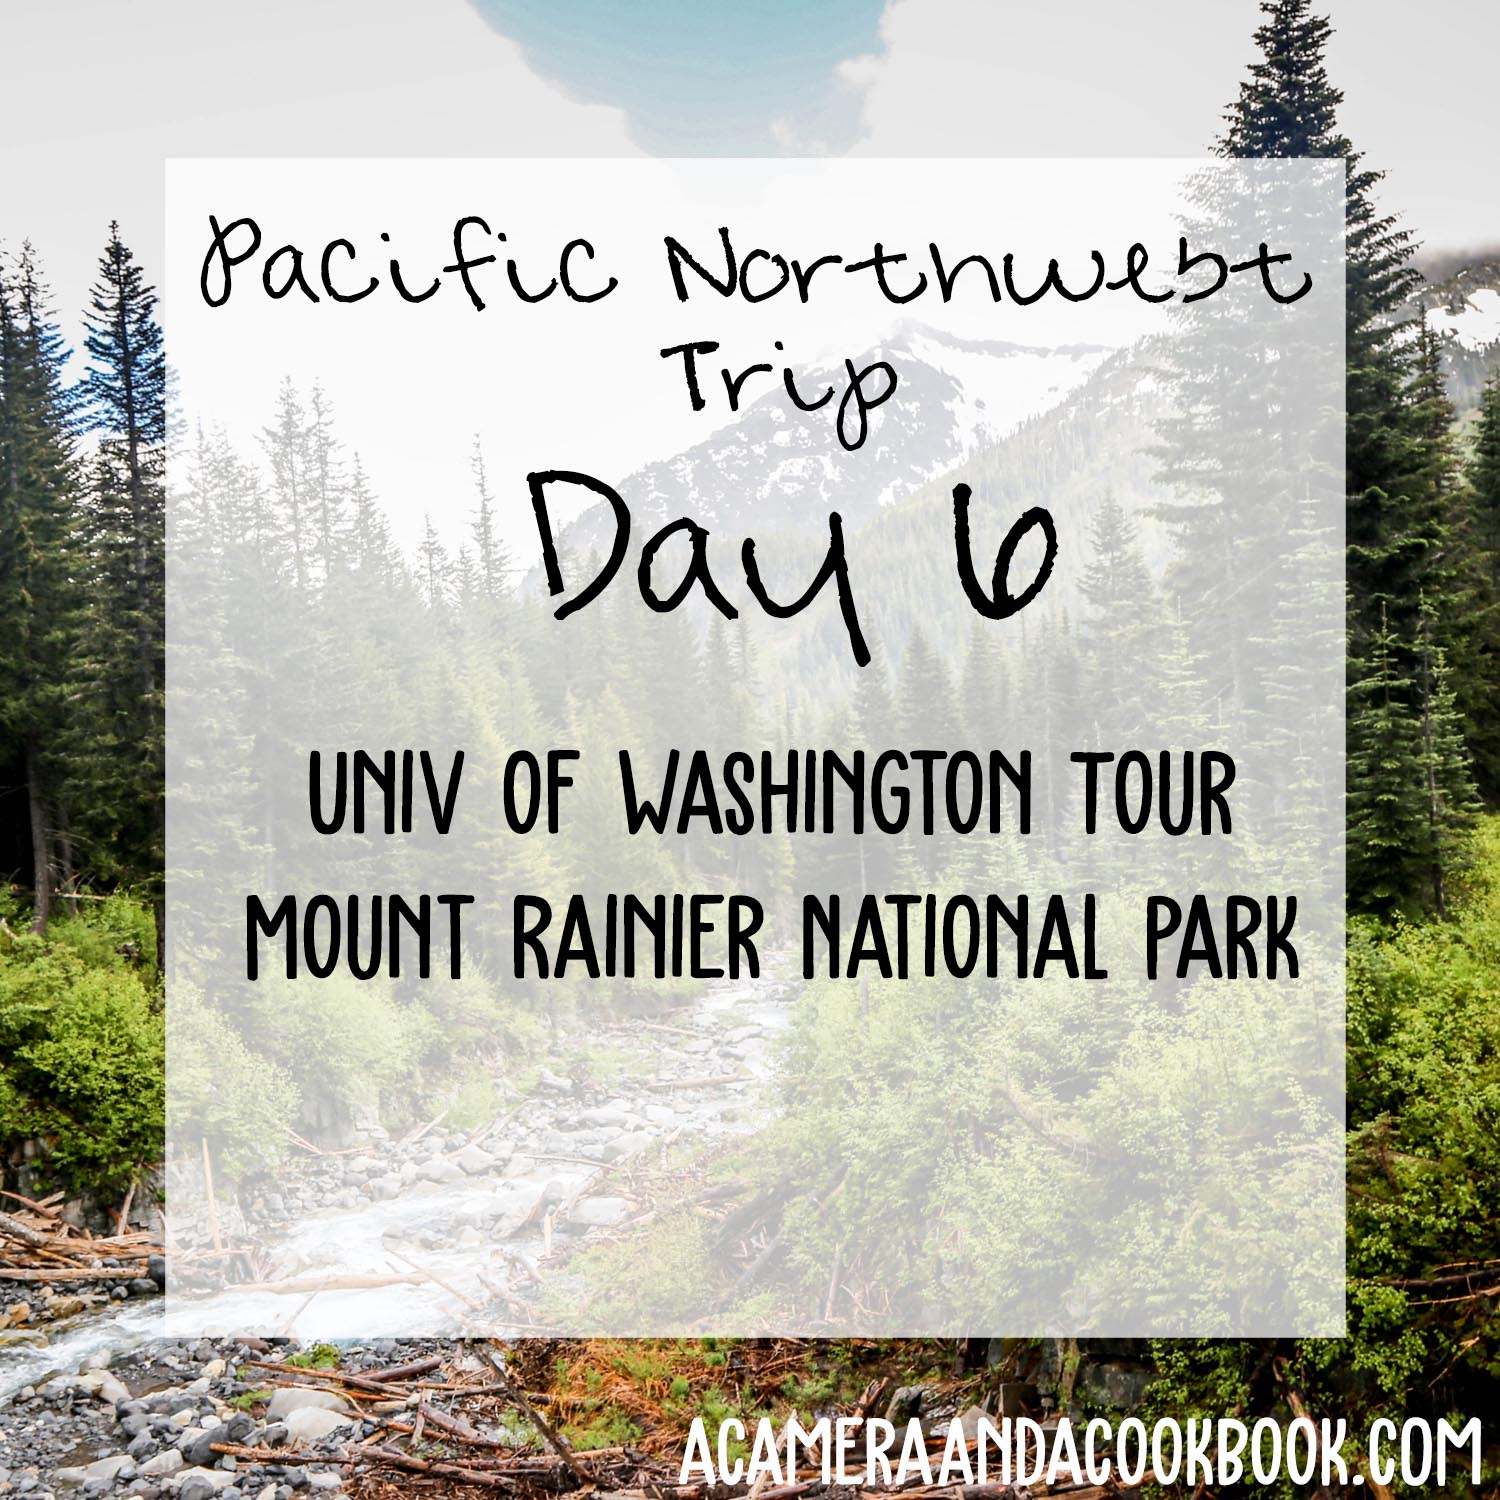 Pacific NW Trip: Day 6